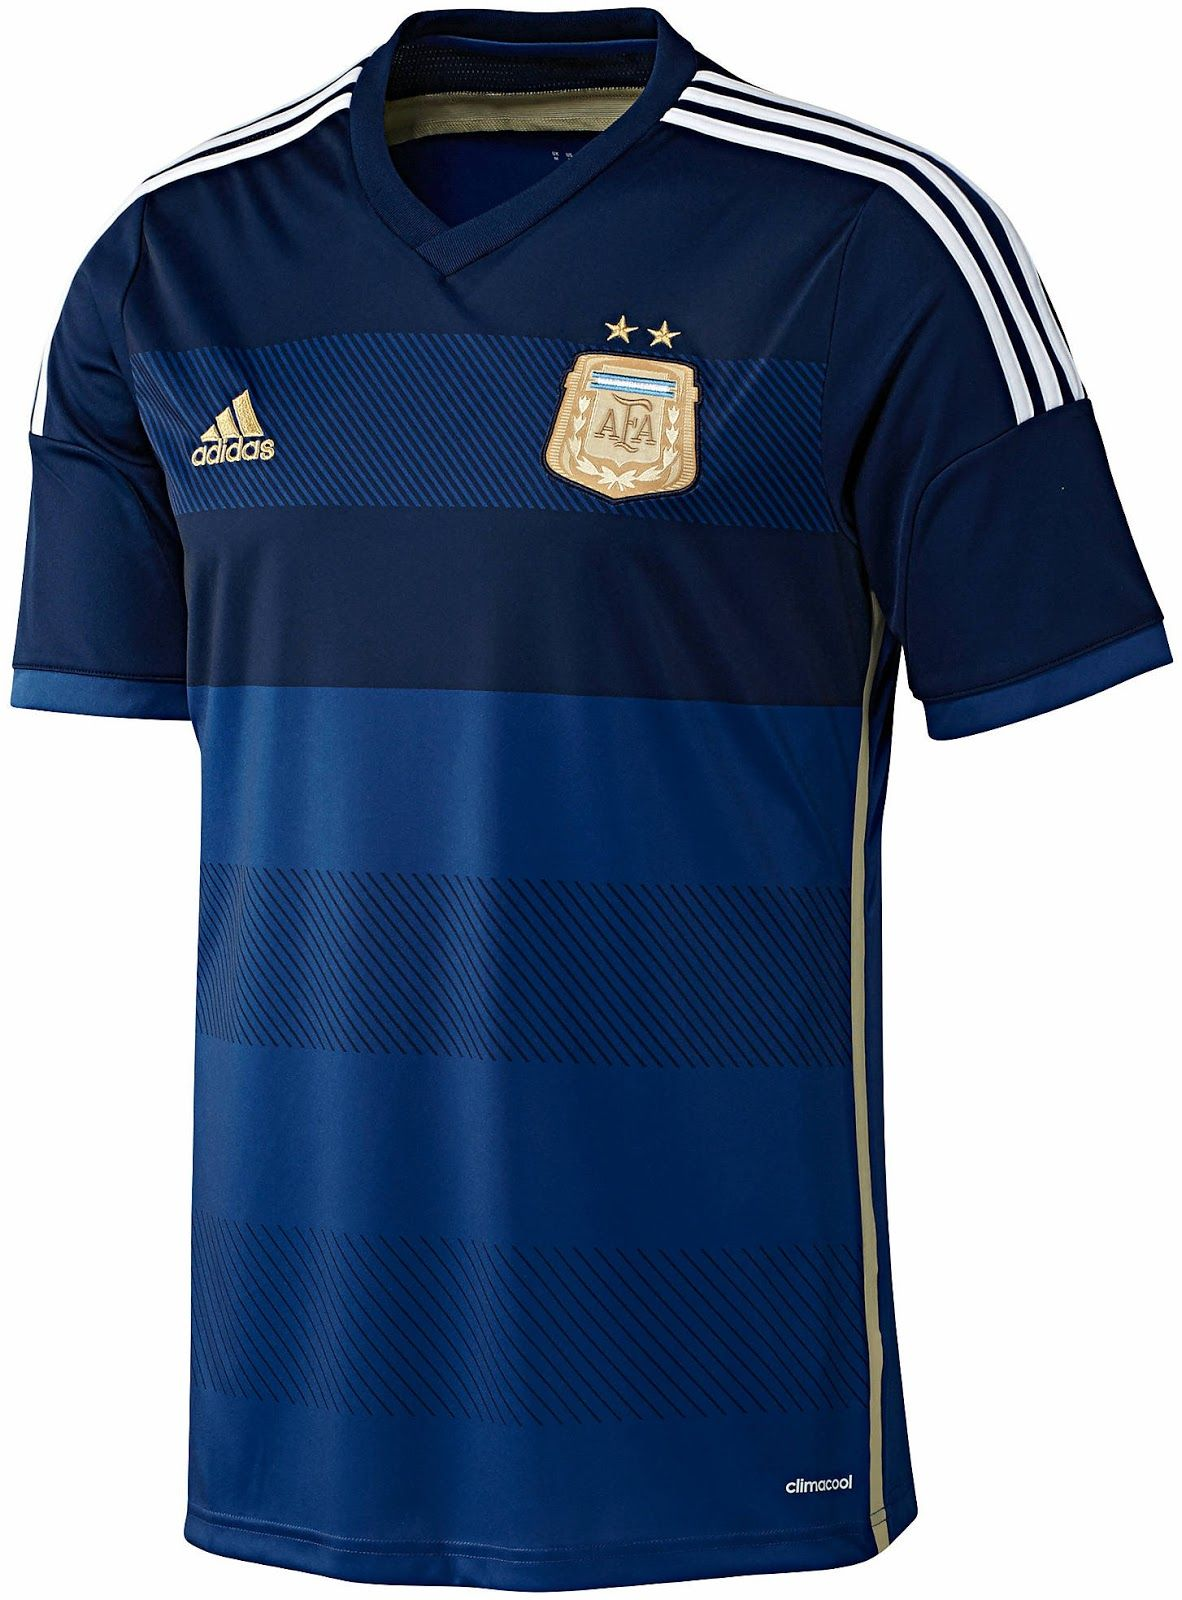 a733e103874 Argentina Away Kit for World Cup 2014 #worldcup #brazil2014 #argentina  #soccer #football #ARG